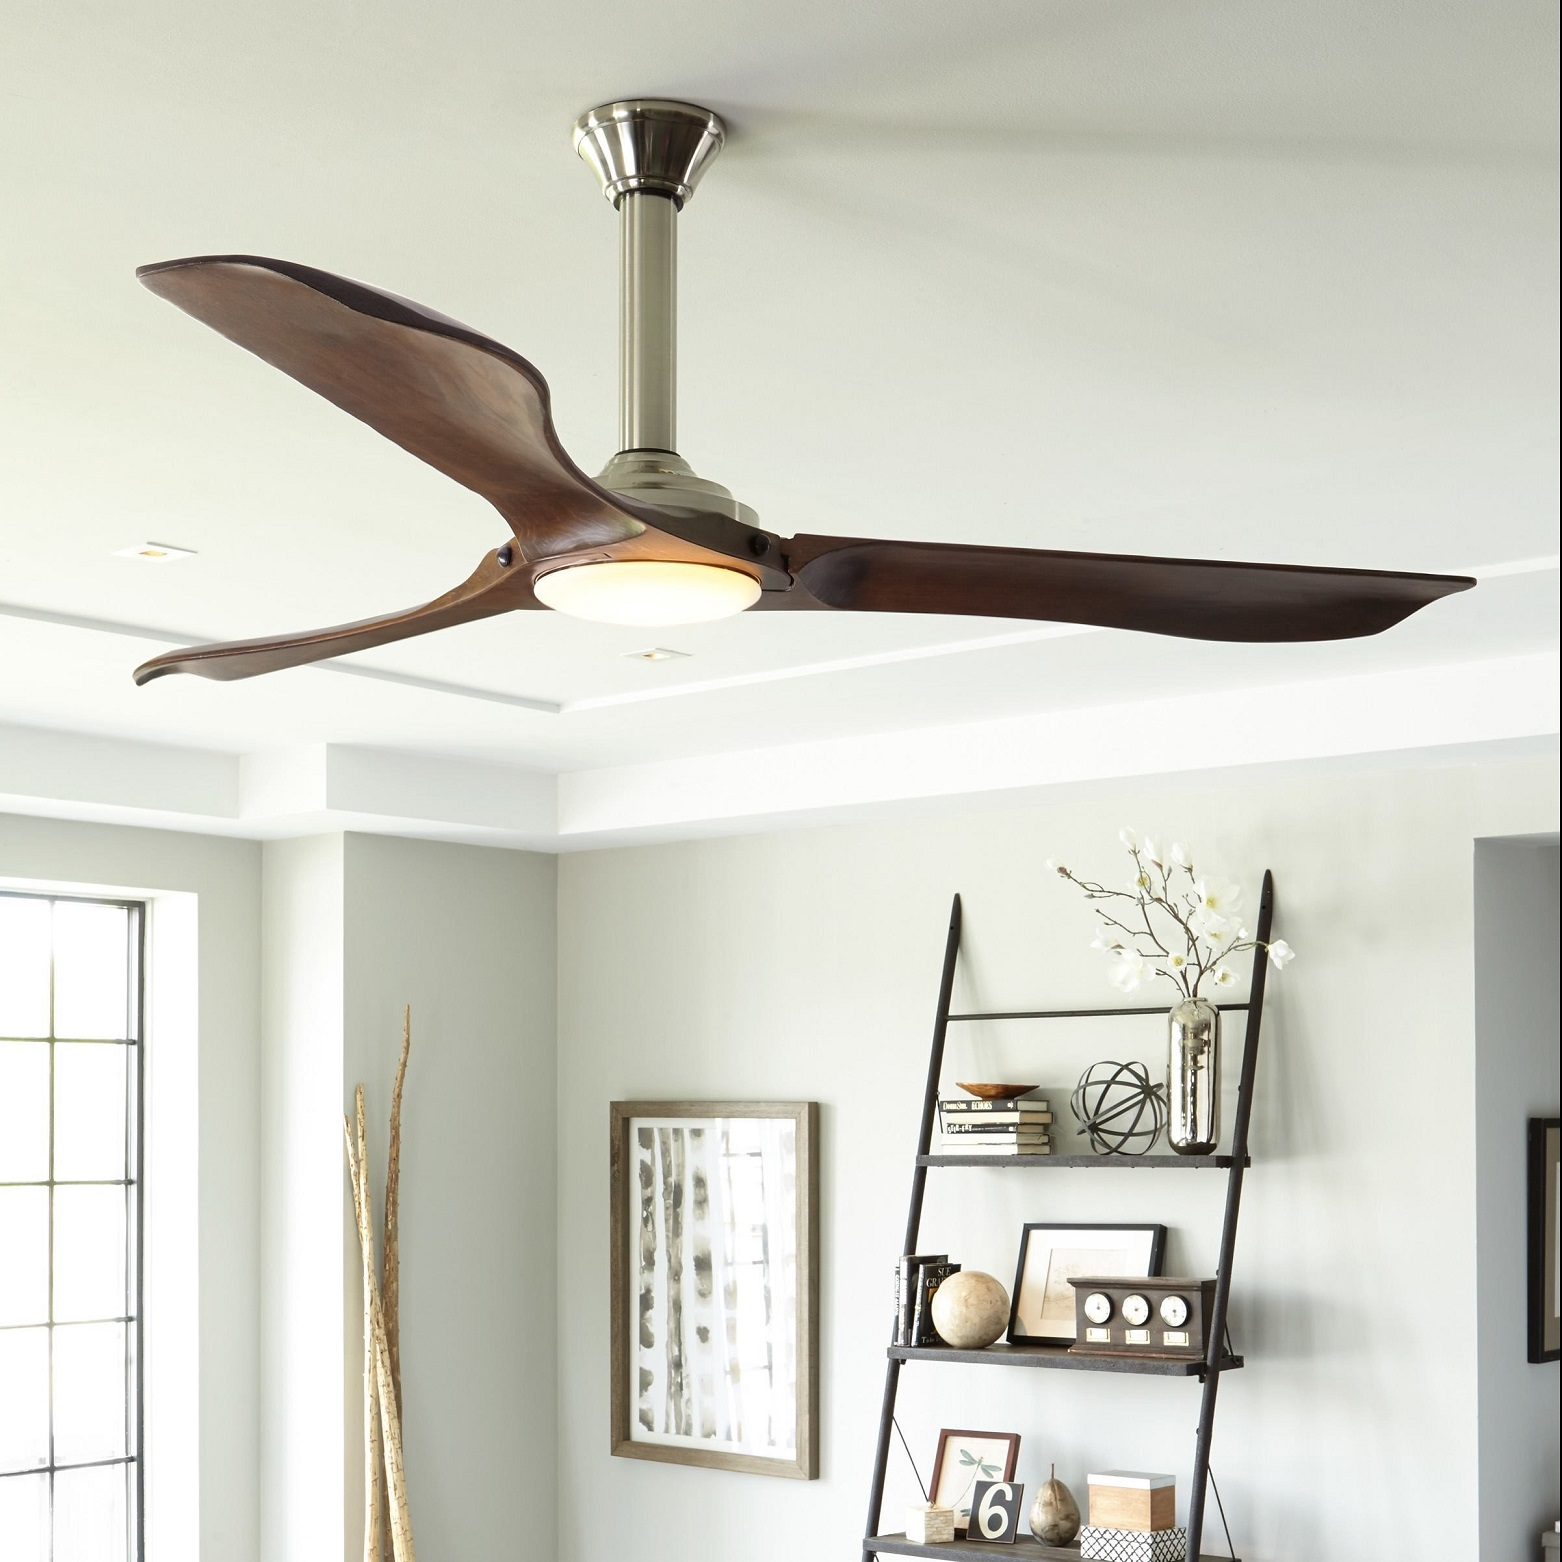 Decorative Ceiling Fan Is Bound To Make An Effect In Your Online Business